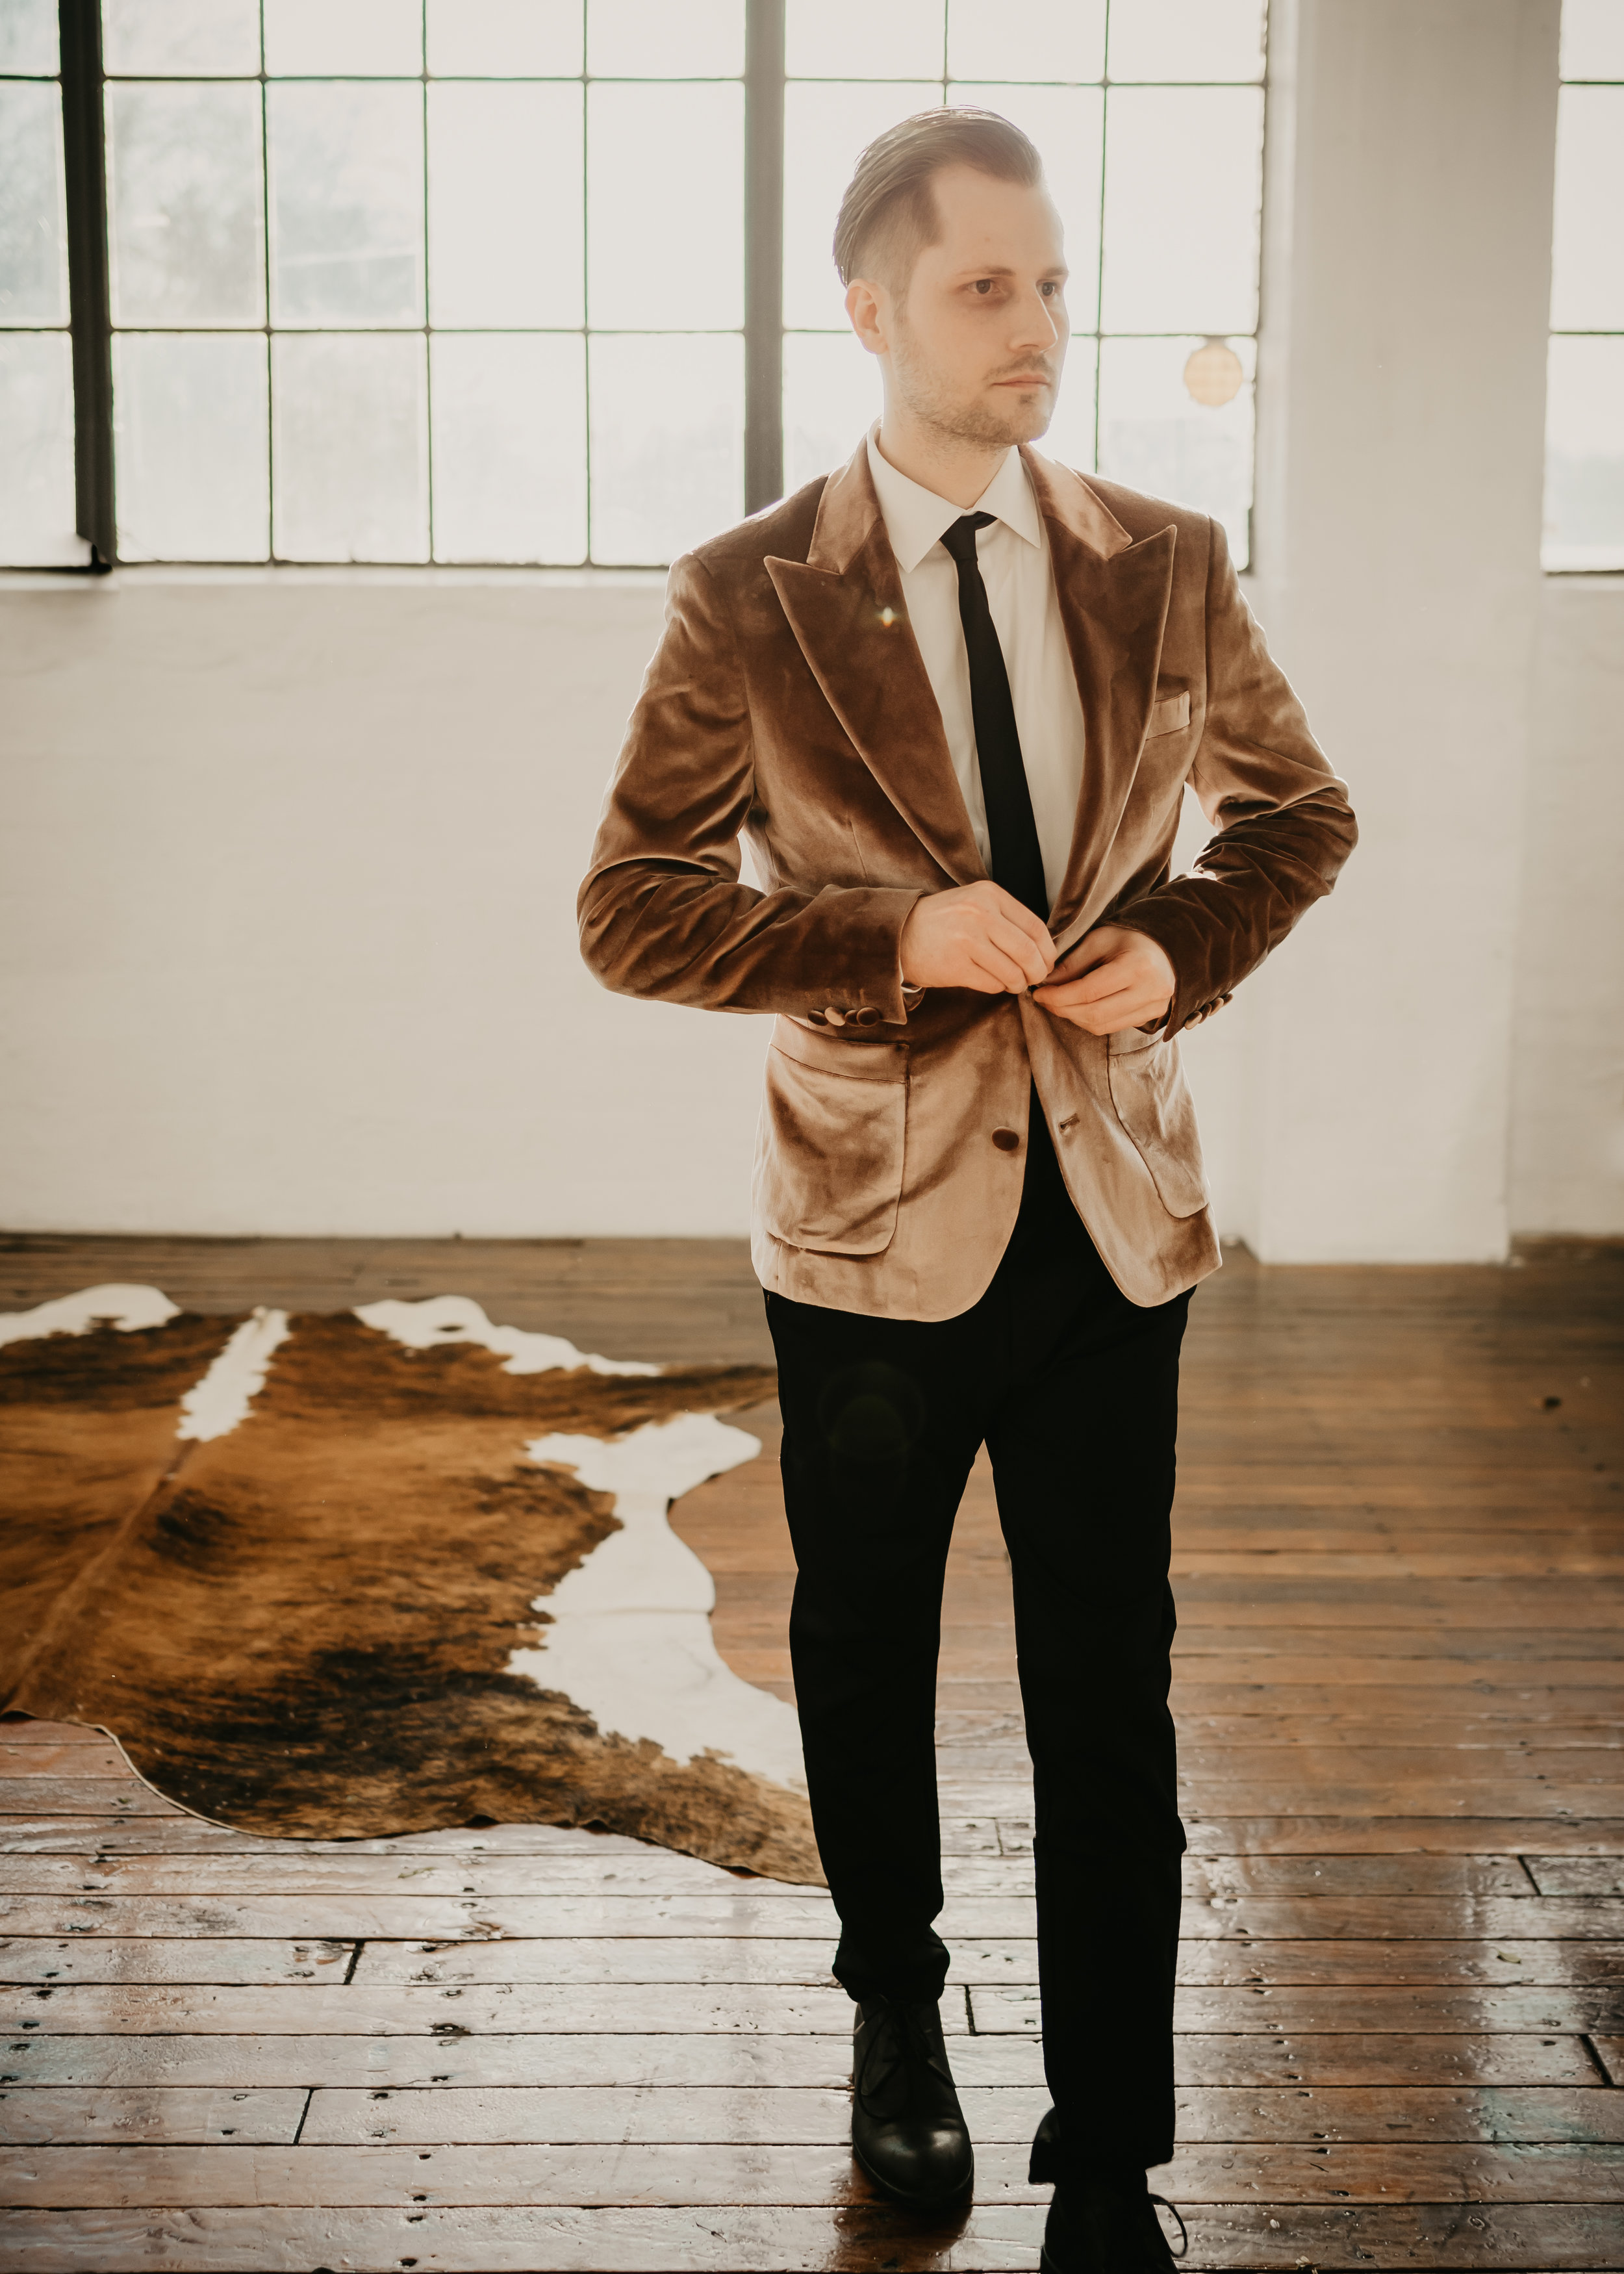 Grooms Attire | Velvet Jacket with Black Pants - Pearl Weddings & Events